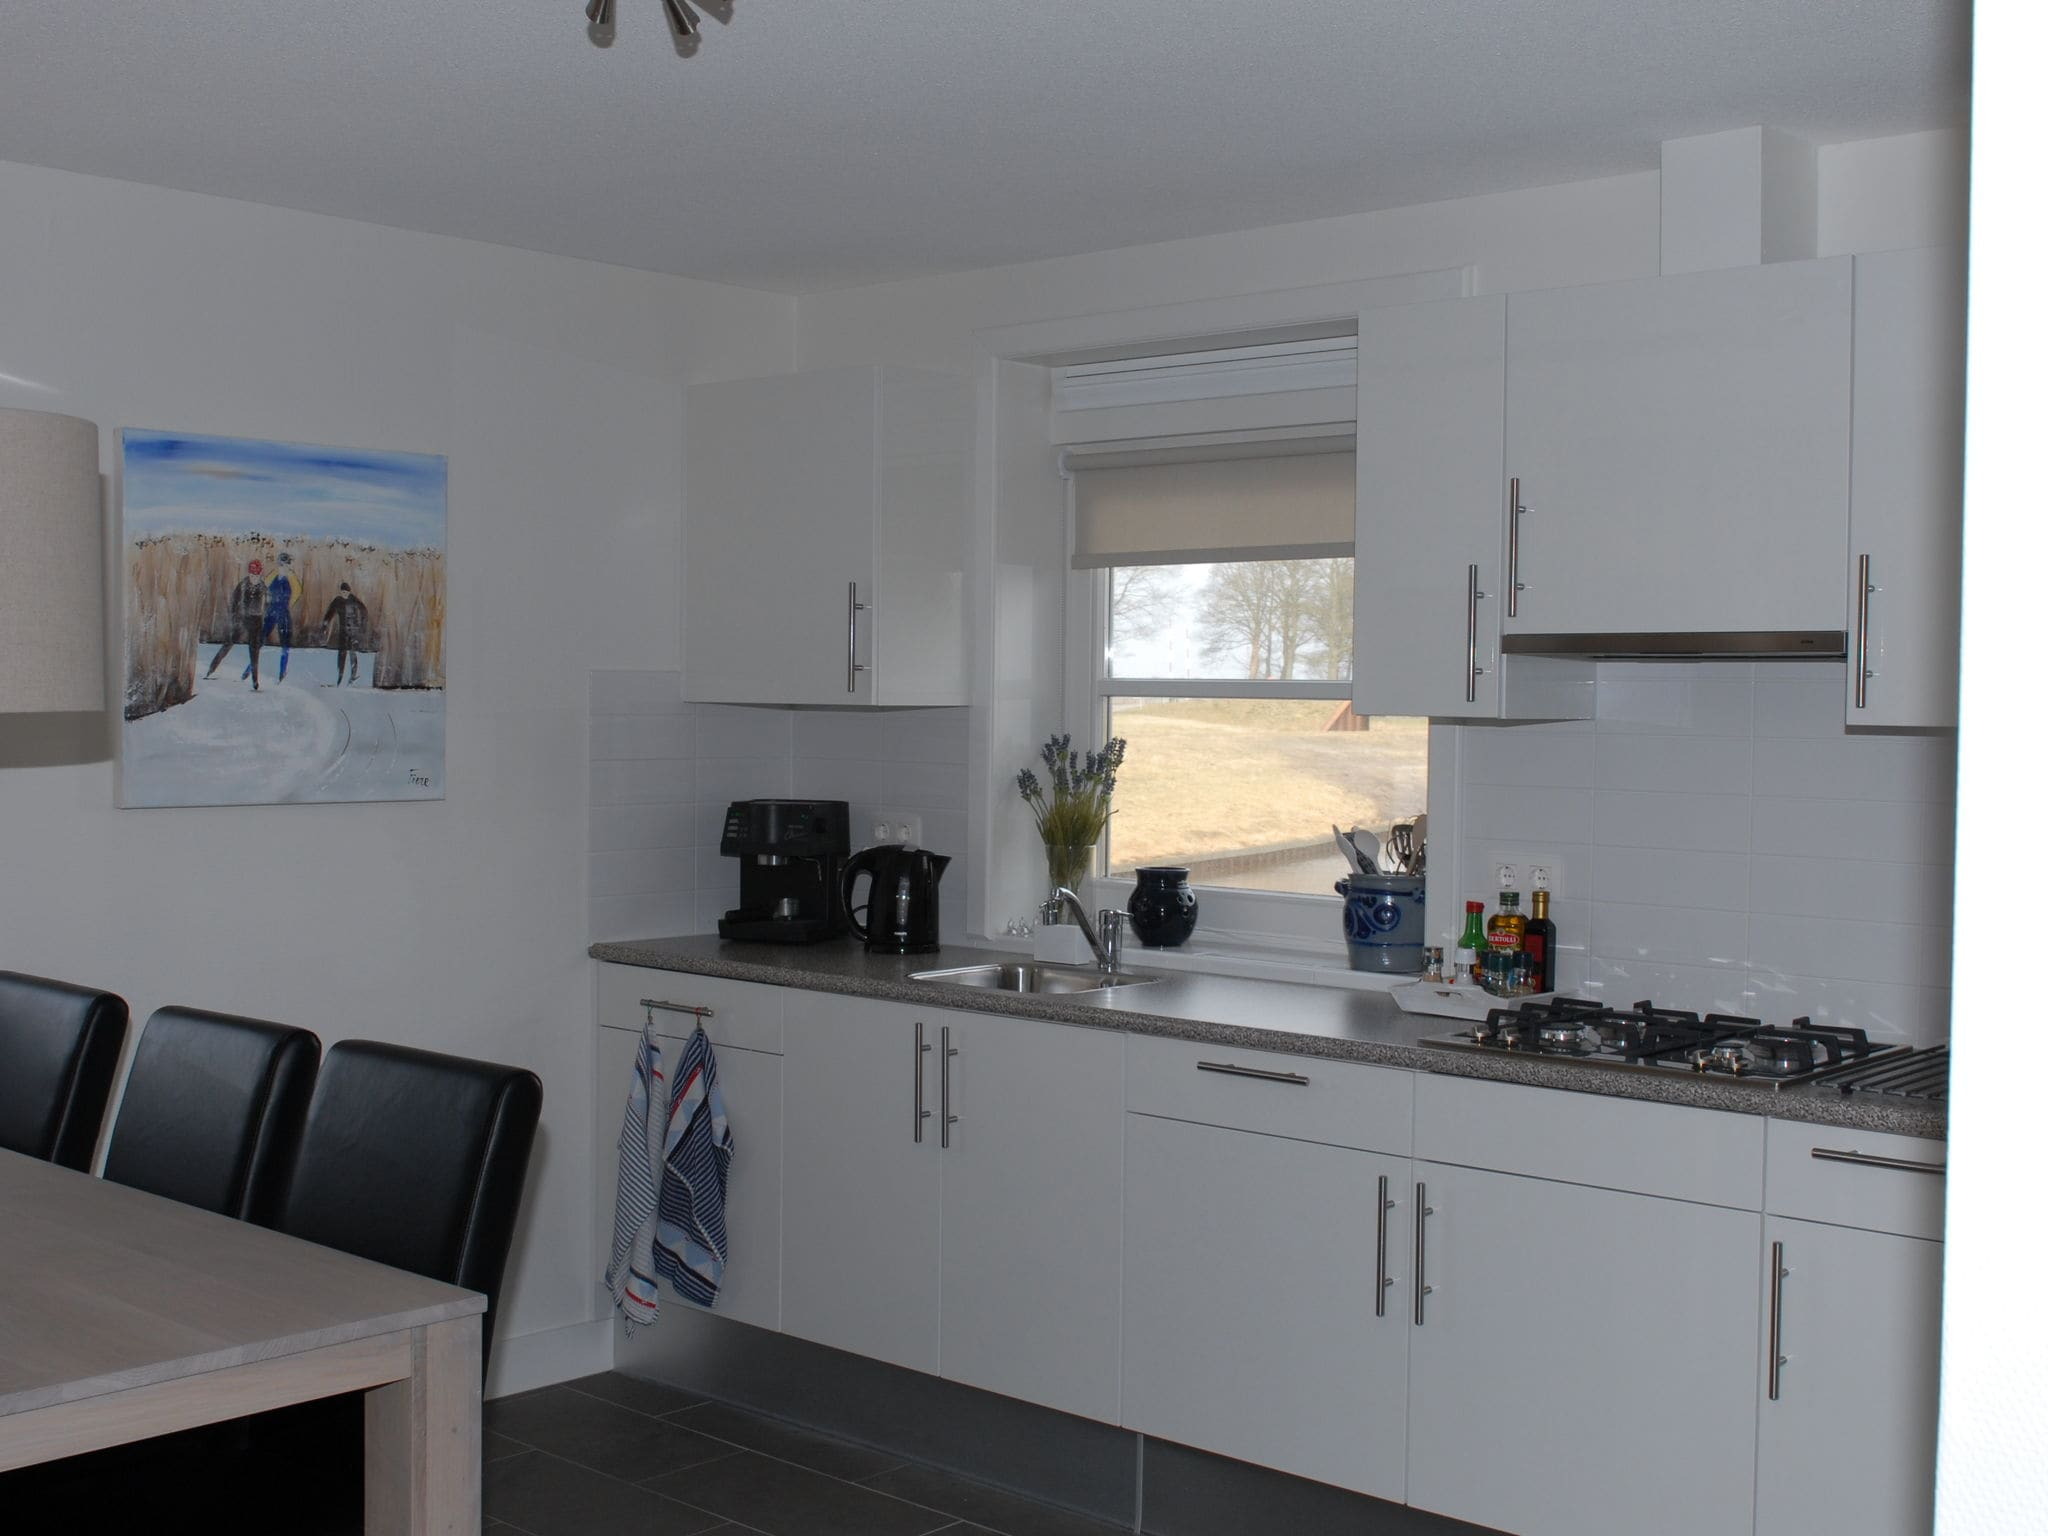 Holland | Overijssel | Holiday home Waterresort Bodelaeke - Ruimte aan 't Water Wellne | all year | Kitchen